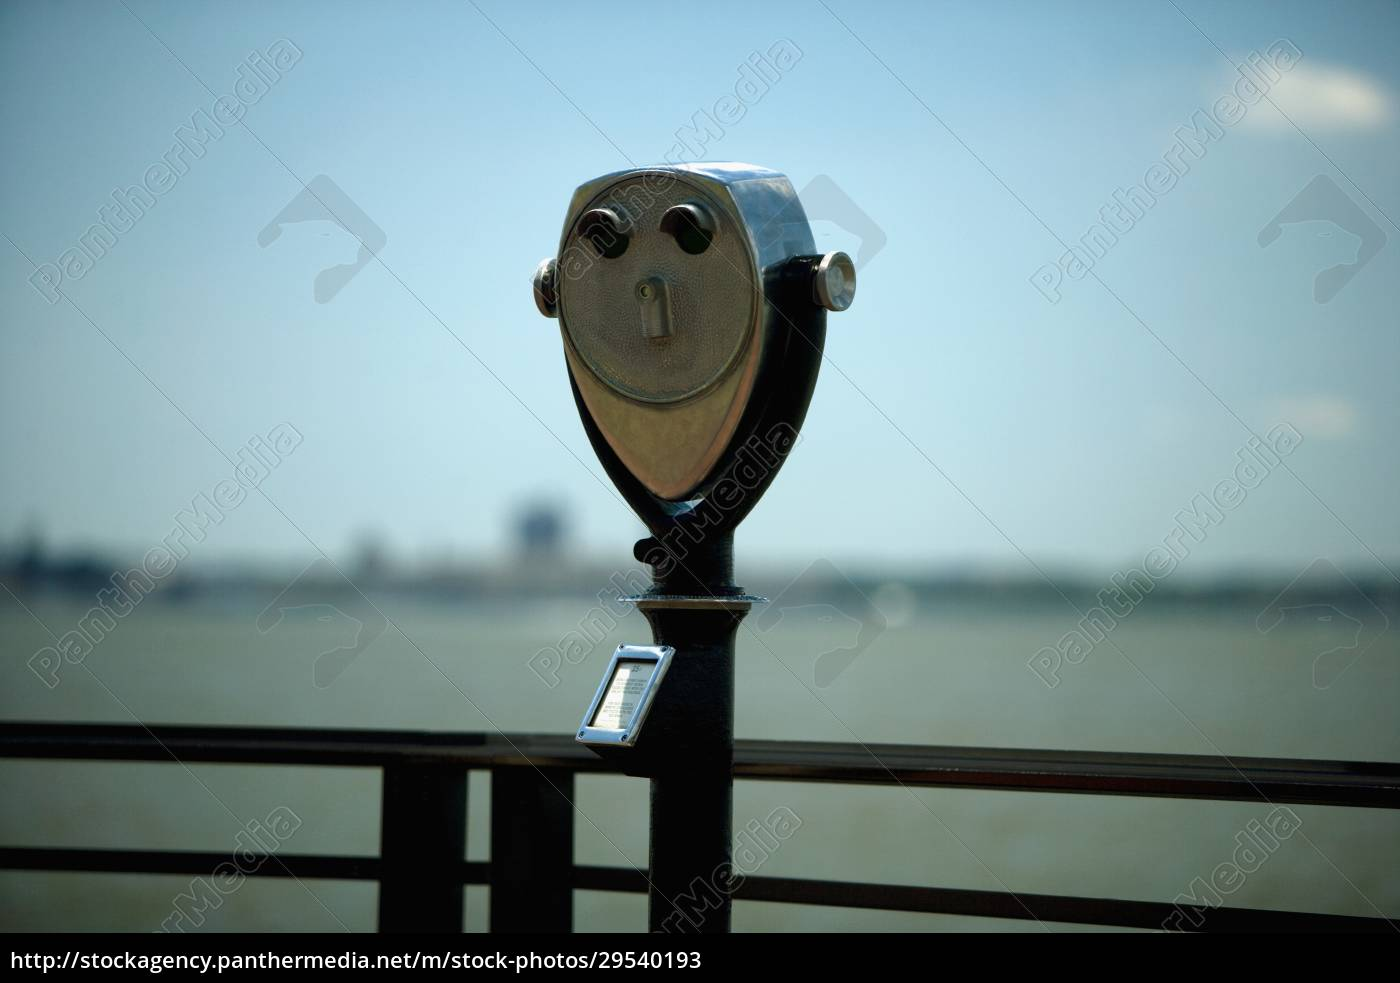 coin-operated, binocular, at, an, observation, point, - 29540193